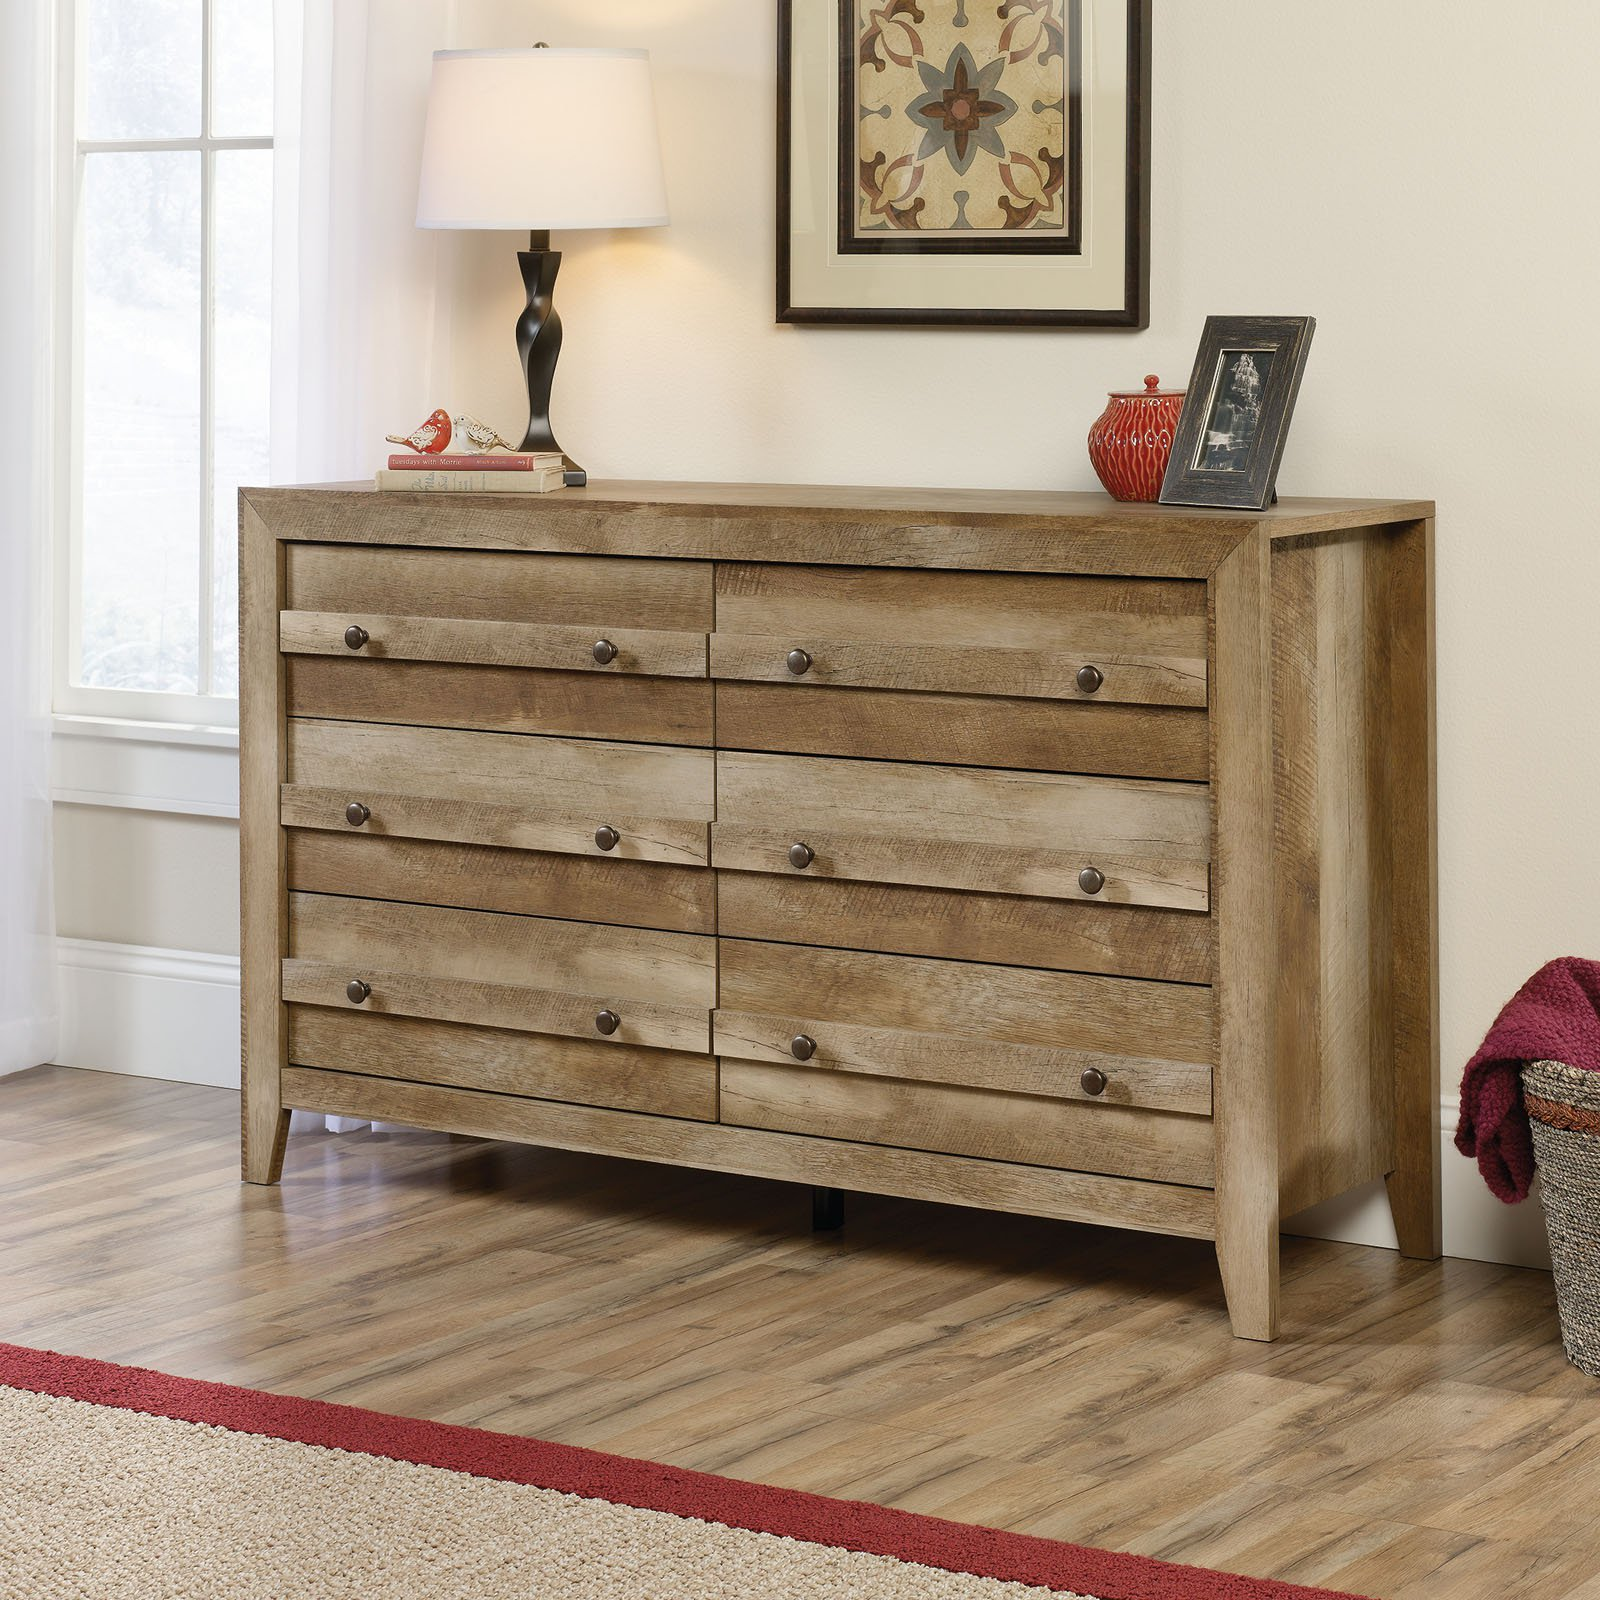 Sauder Dakota Pass 6-Drawer Dresser, Craftsman Oak Finish